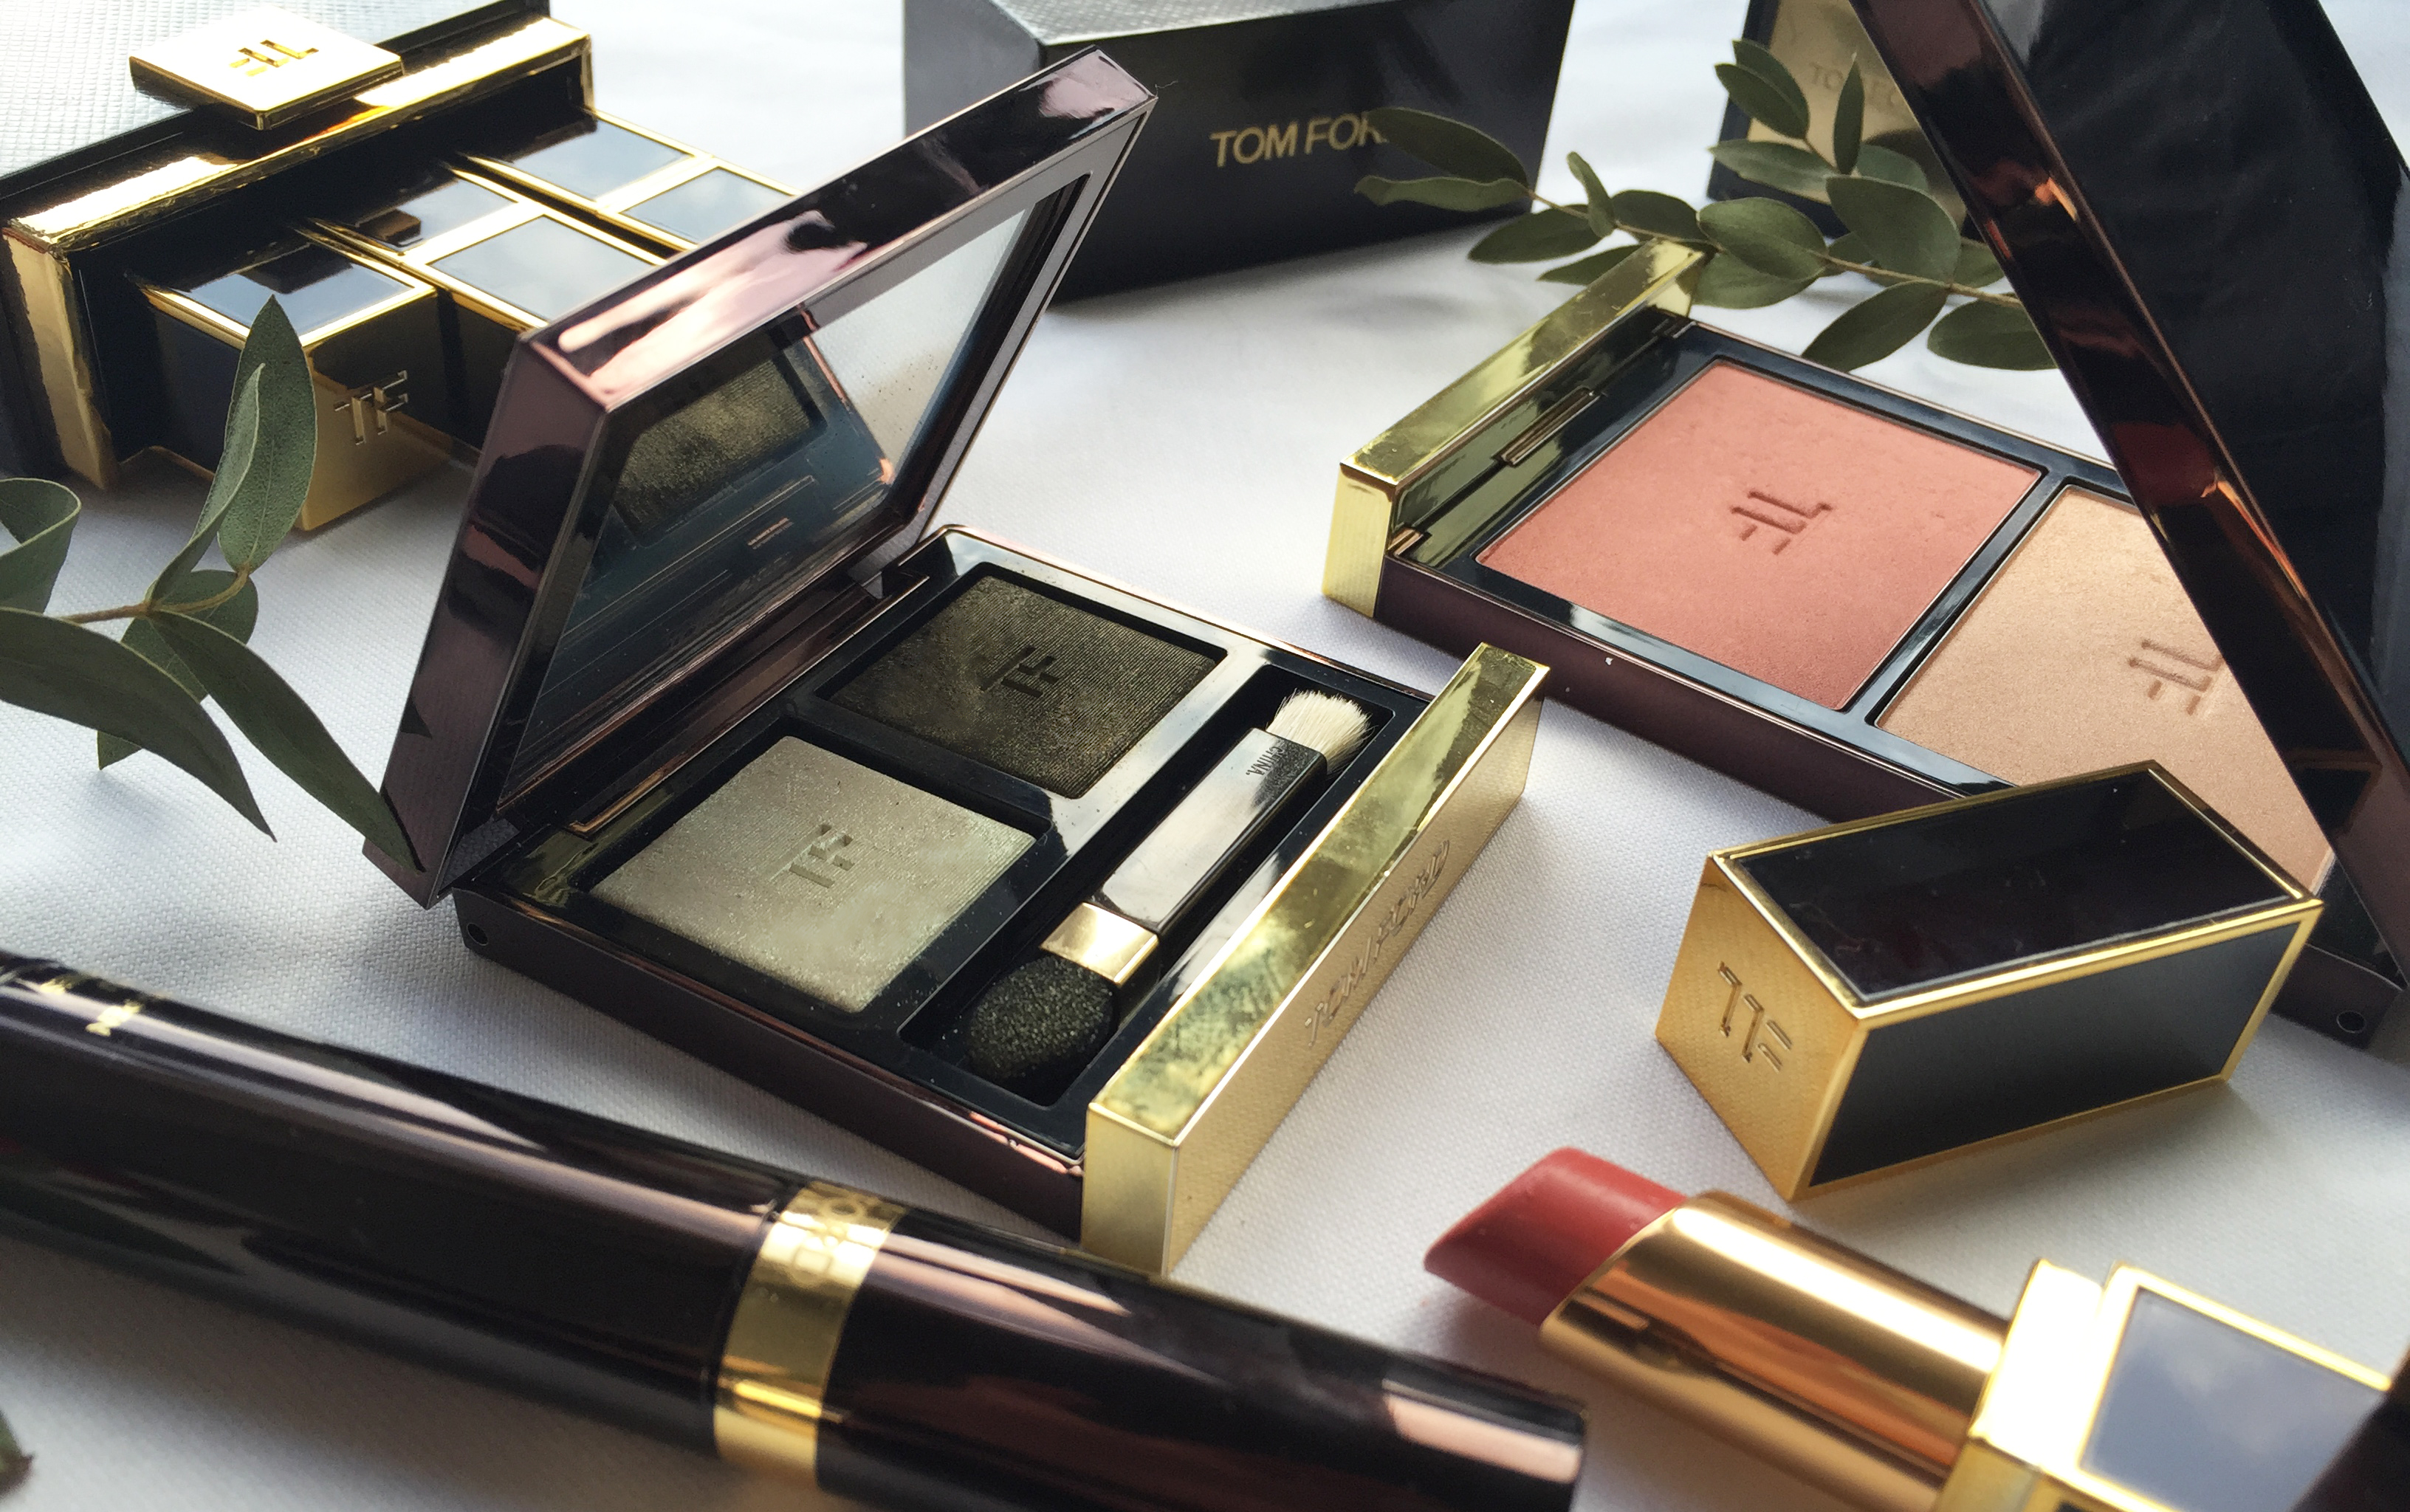 38fc70173d043 Tom Ford Eye Color Duo in Raw Jade for Spring 2015 - Silverkis  World